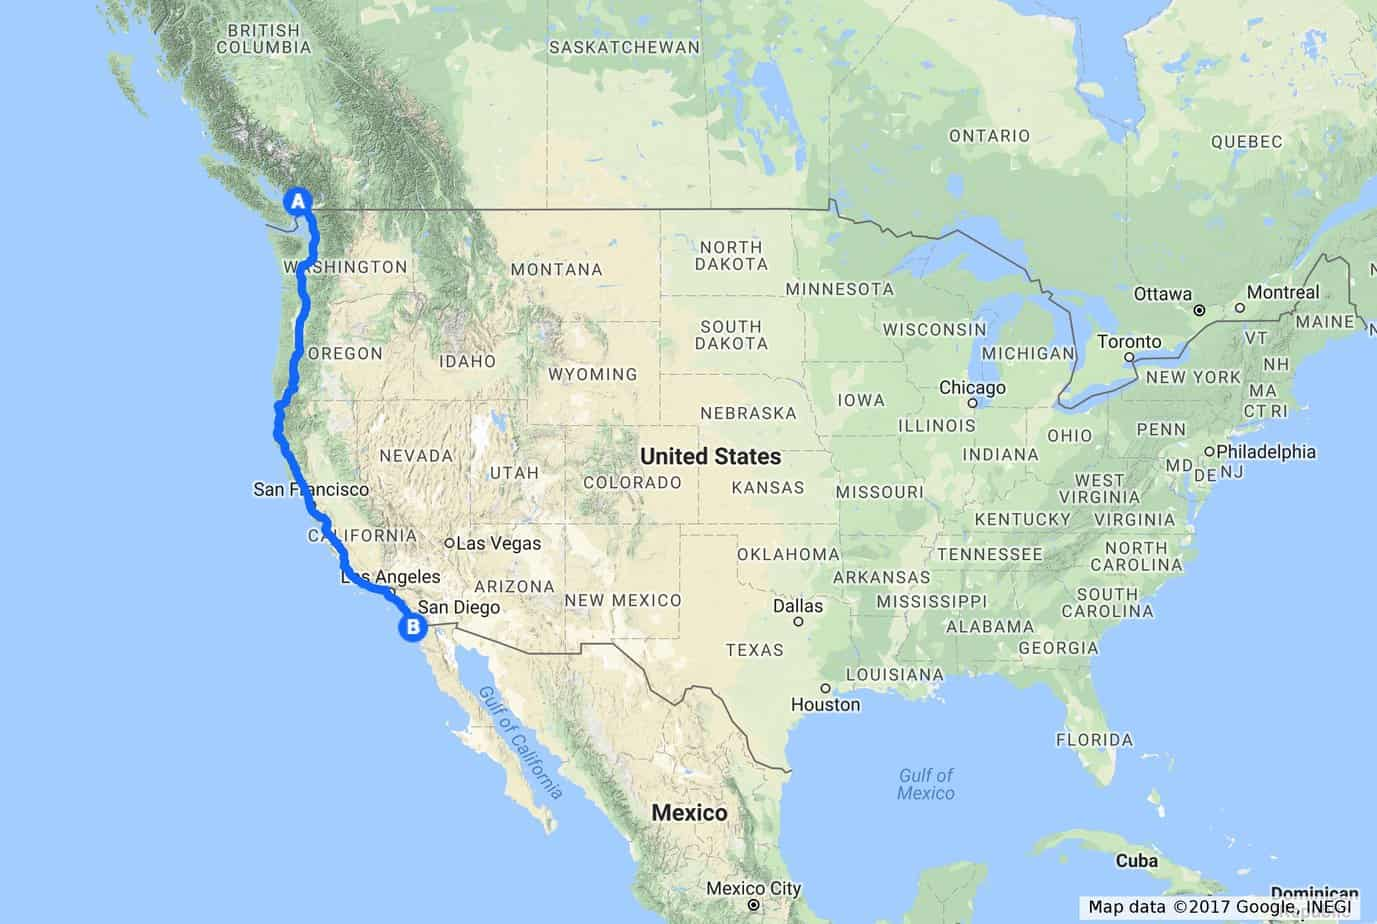 Kicking the States Expedition